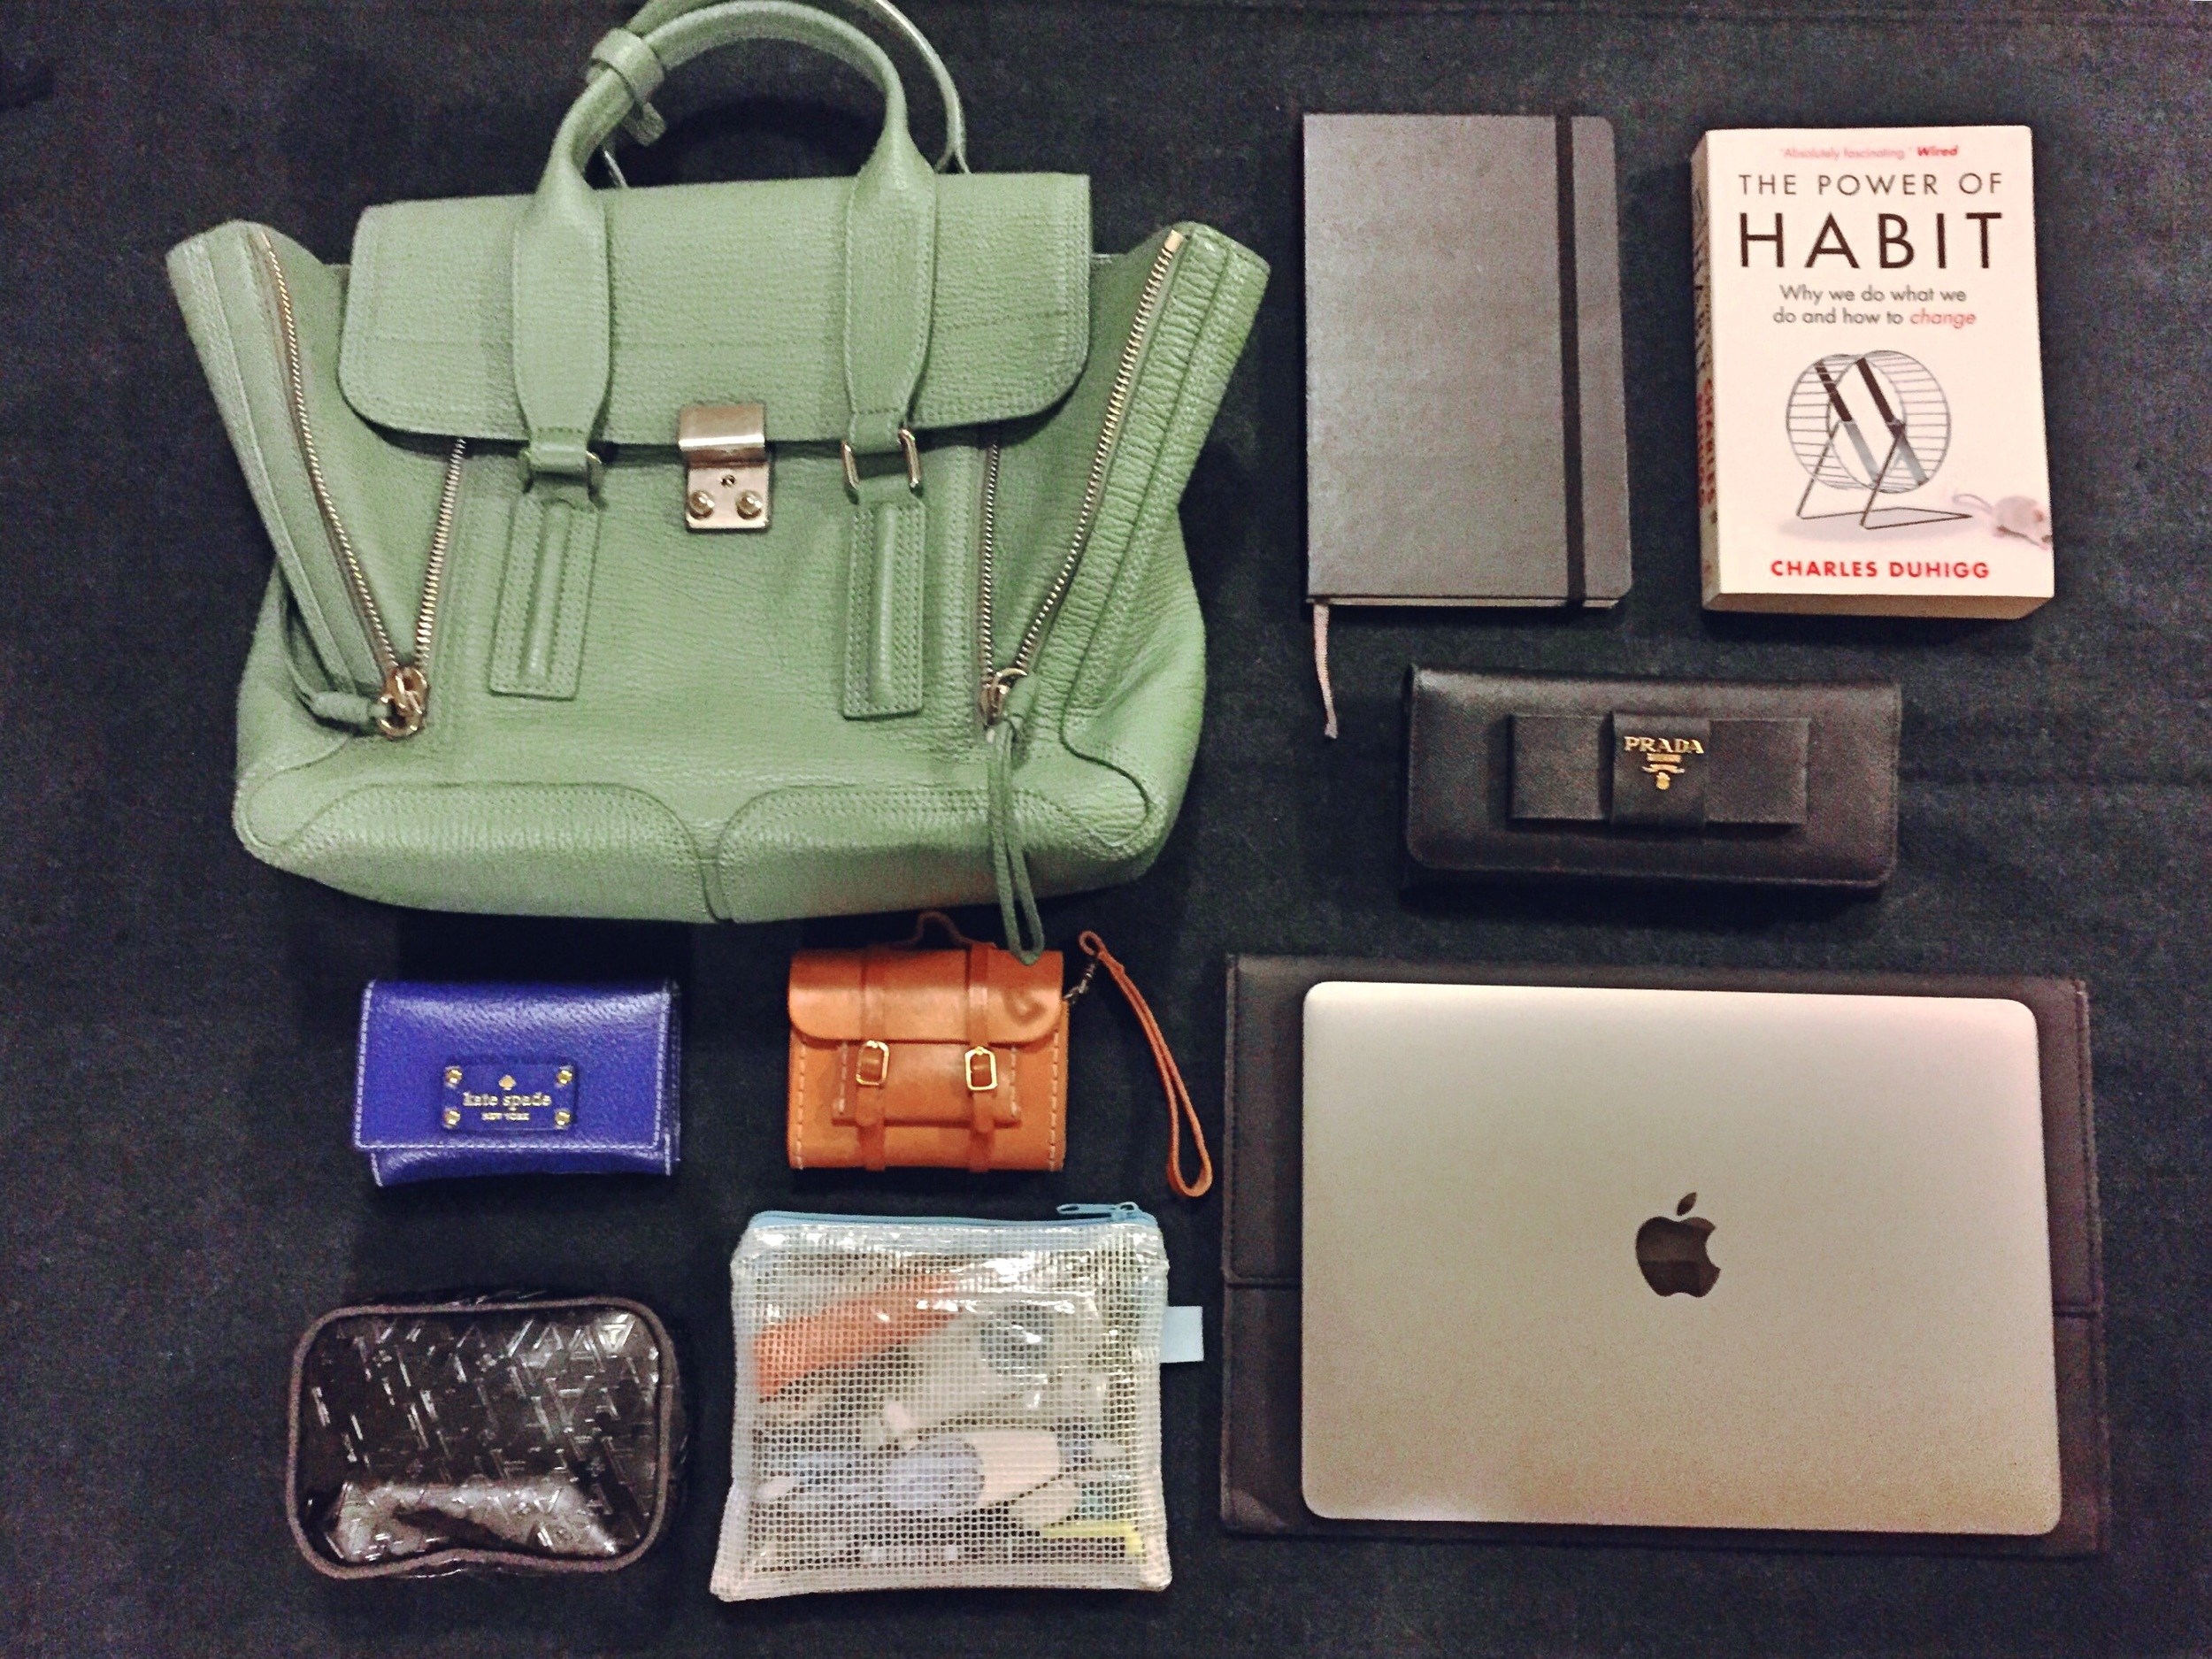 "3.1 Phillip Lim   Agave pashli medium satchel//  Moleskine  18 month planner//  The Power of Habit  by Charles Duhigg//  Prada  Black saffiano wallet//  Kate Spade  Card holder//  REISEN  Xiaomi power bank case from  Kogosei //  Anteprima  Cosmetic pouch// Transparent pencil case//  Apple  12"" macbook in space grey"